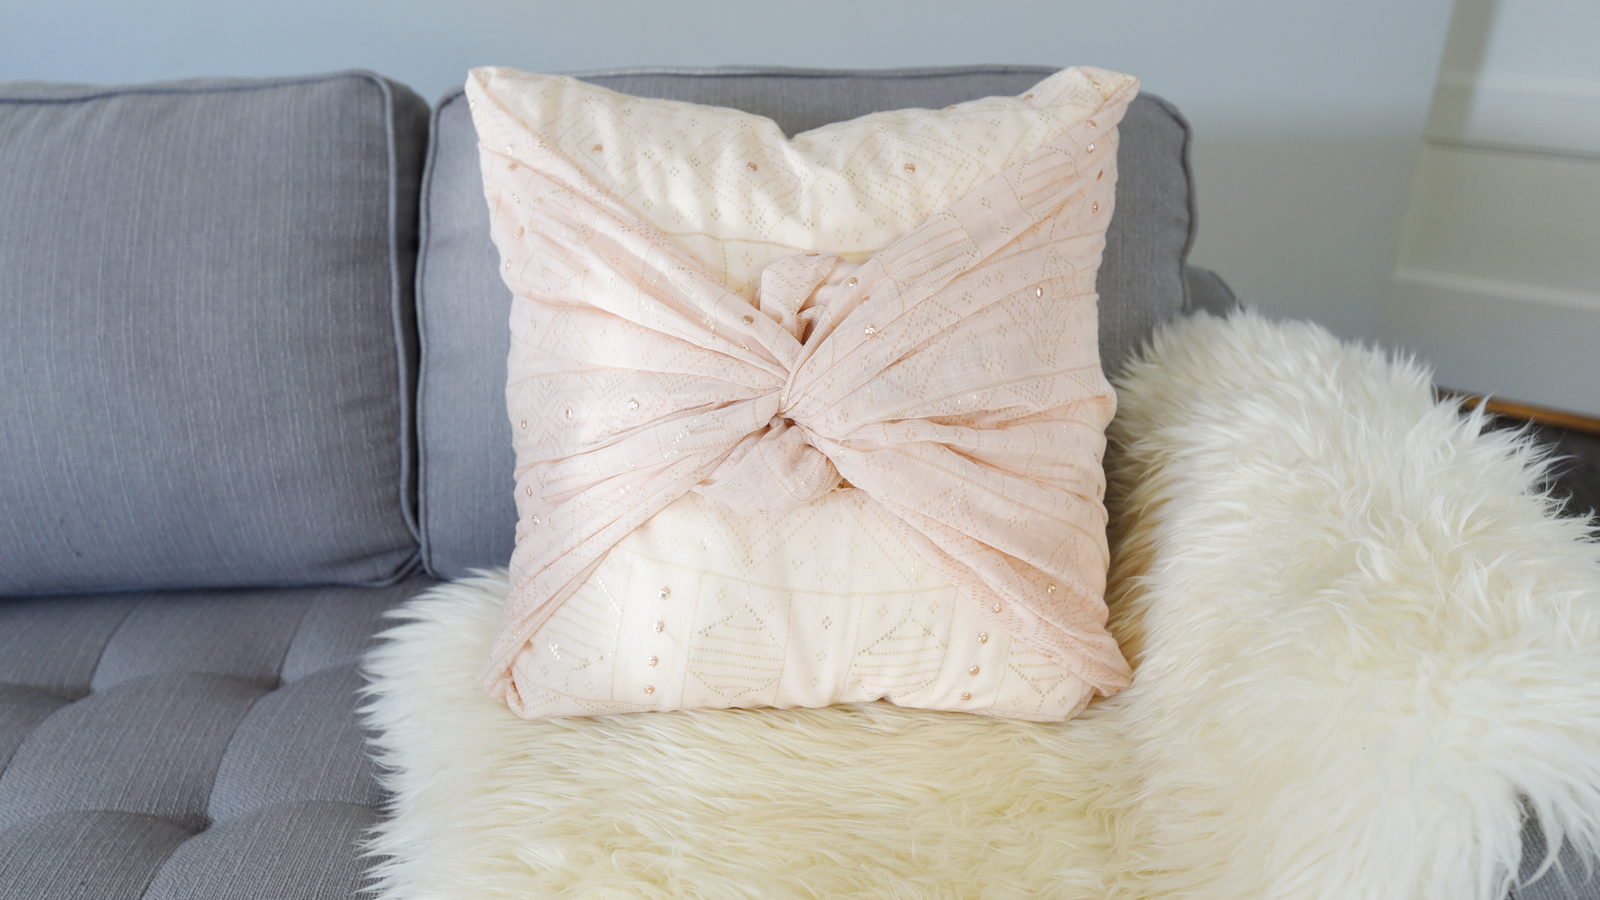 How to make a pillow from a scarf - video tutorial